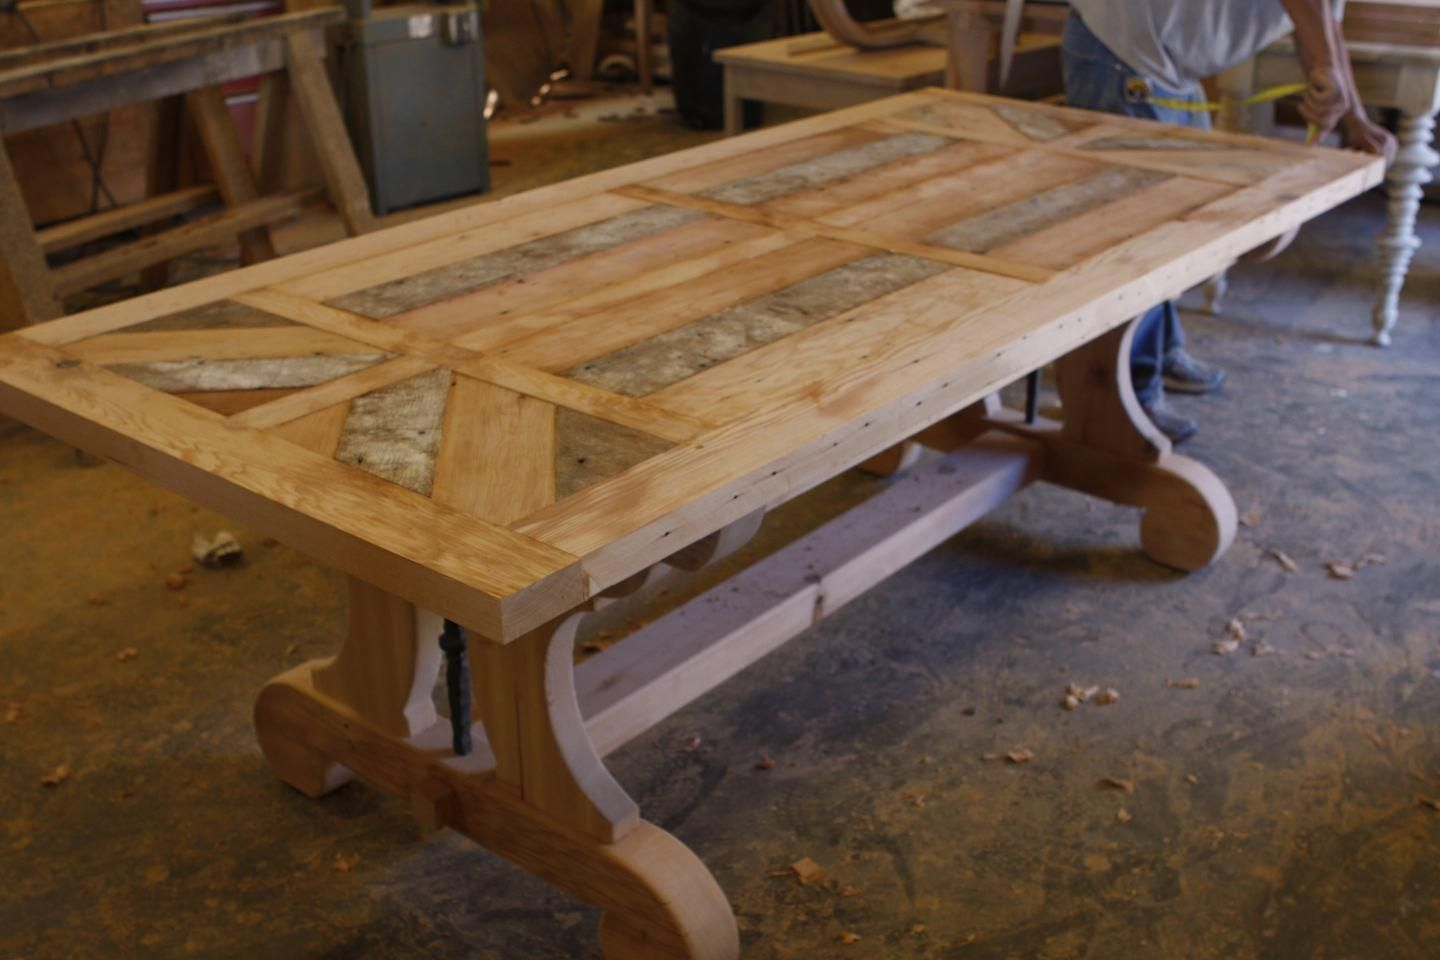 Custom Made Custom Trestle Dining Table With Leaf Extensions Built In Reclaimed  Wood - Hand Crafted Custom Trestle Dining Table With Leaf Extensions